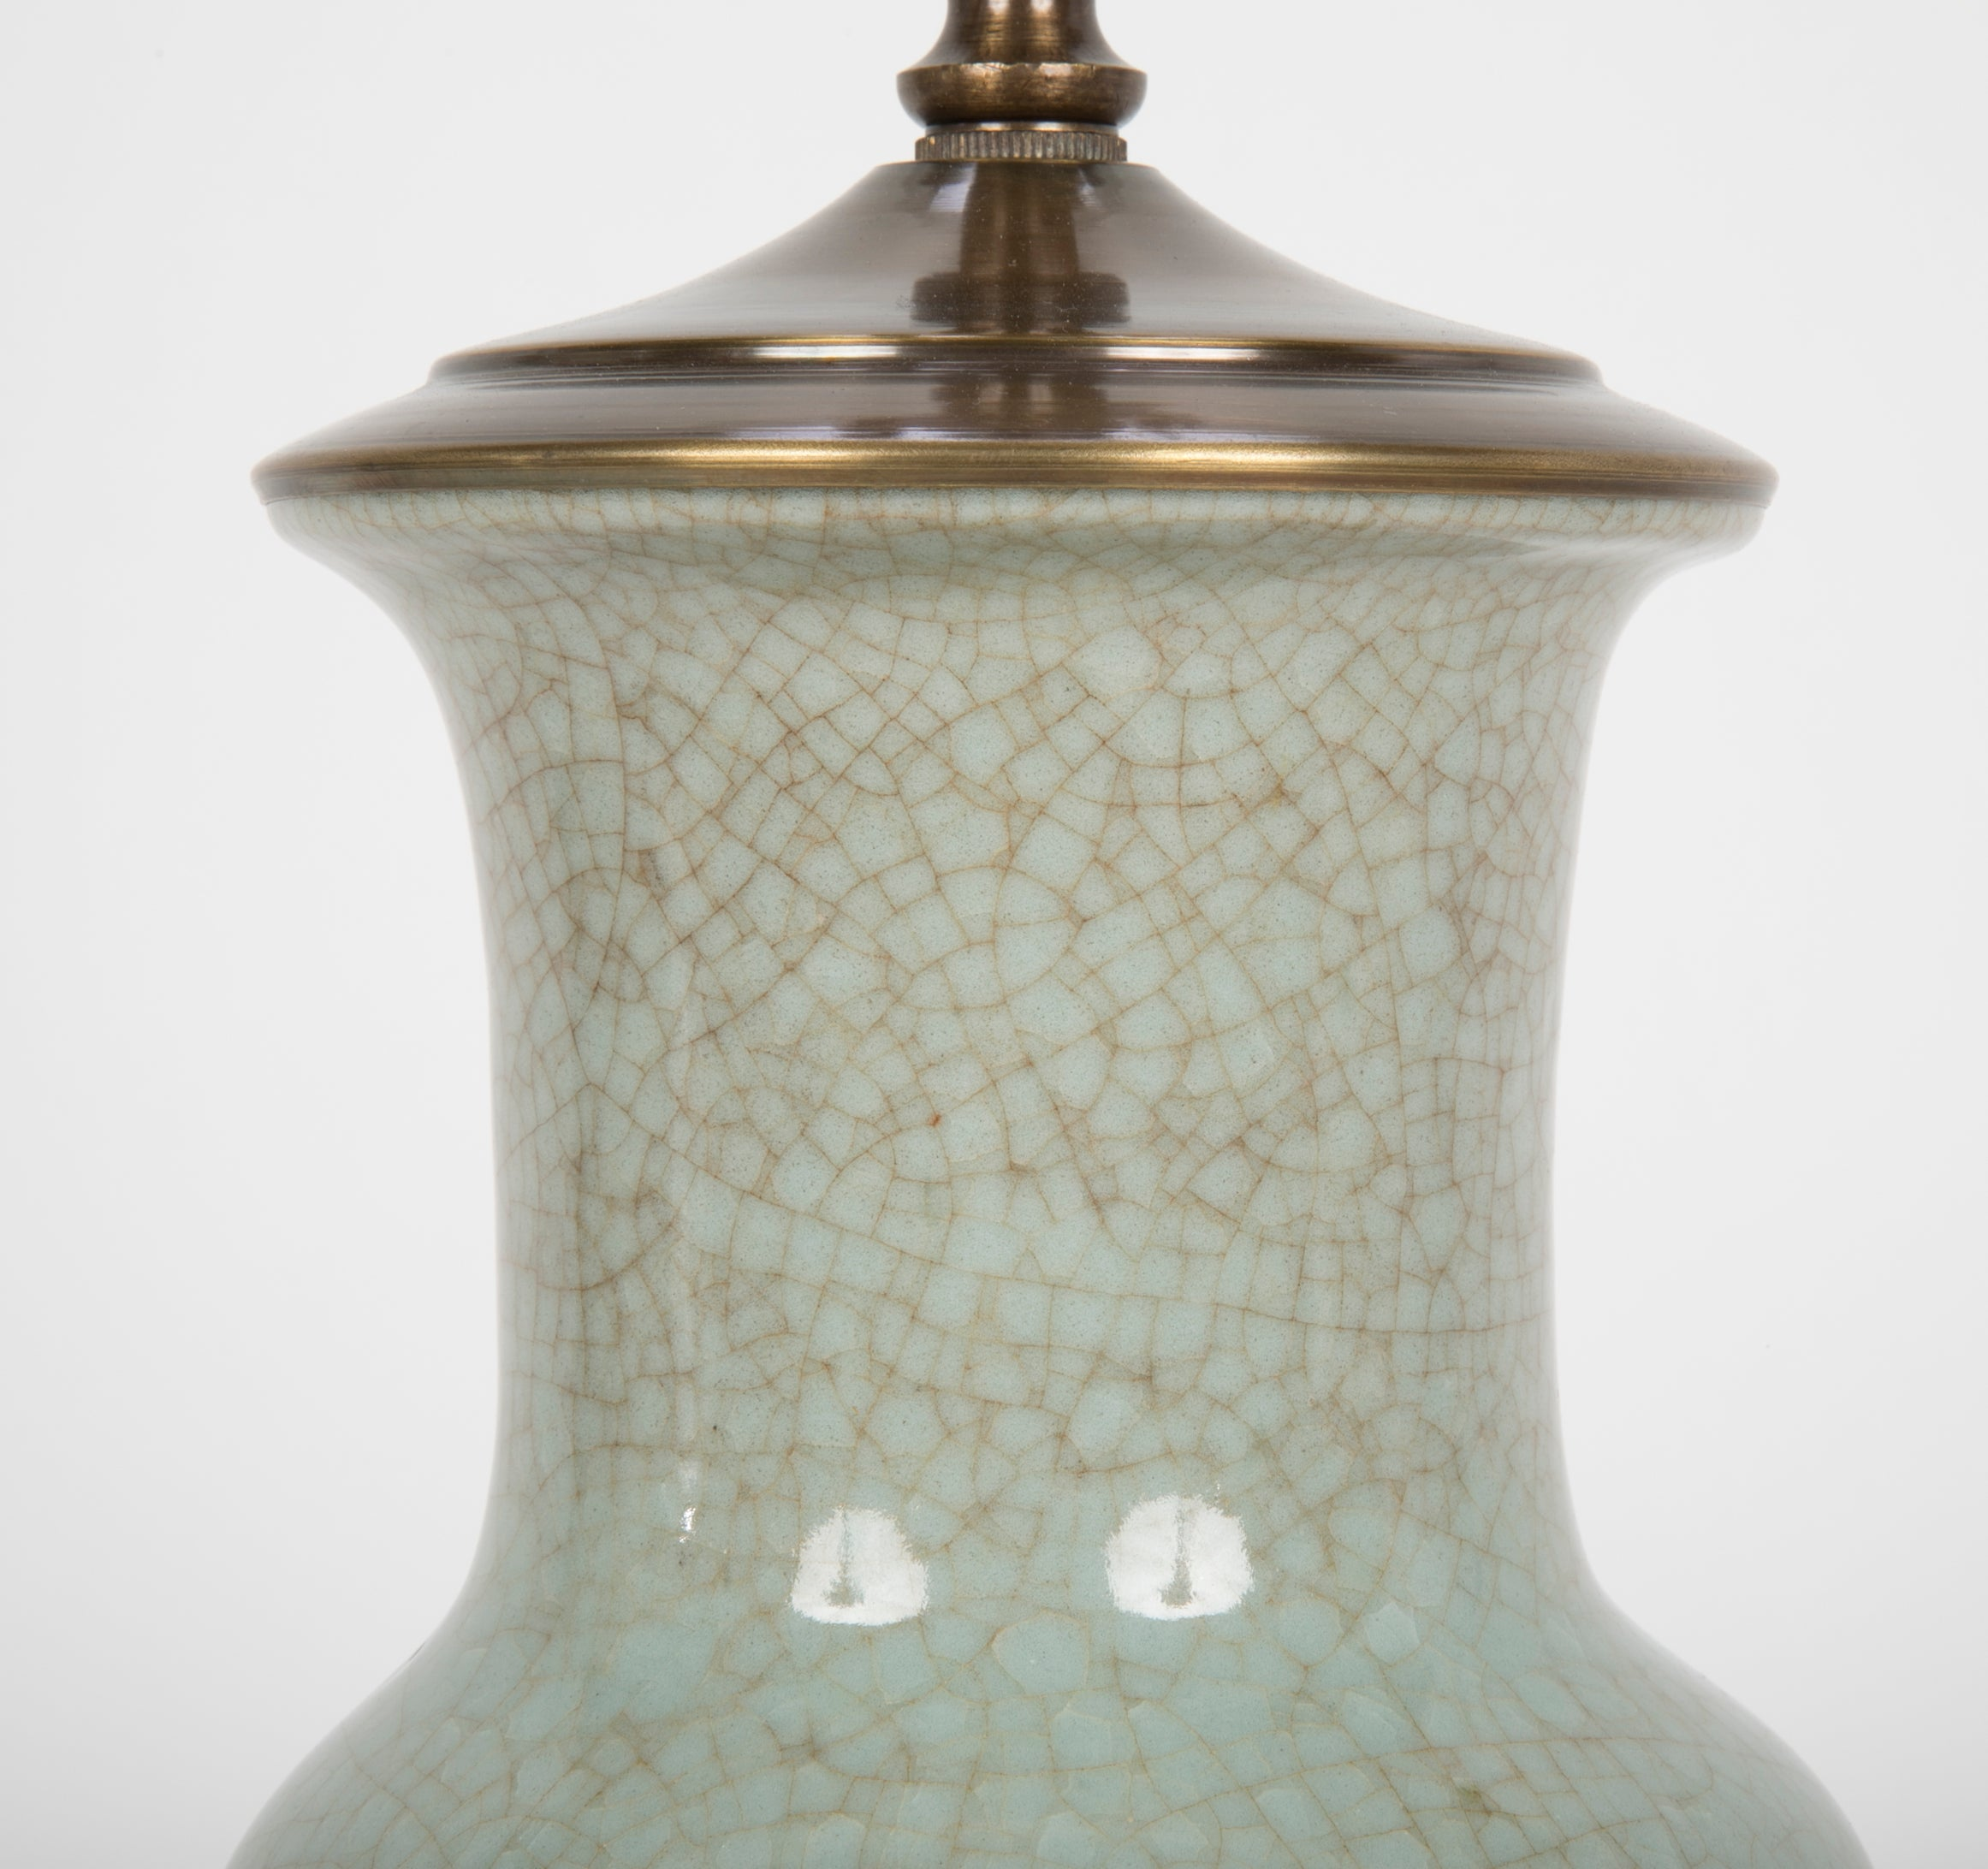 Guan Ware Baluster Form Vase now a Lamp